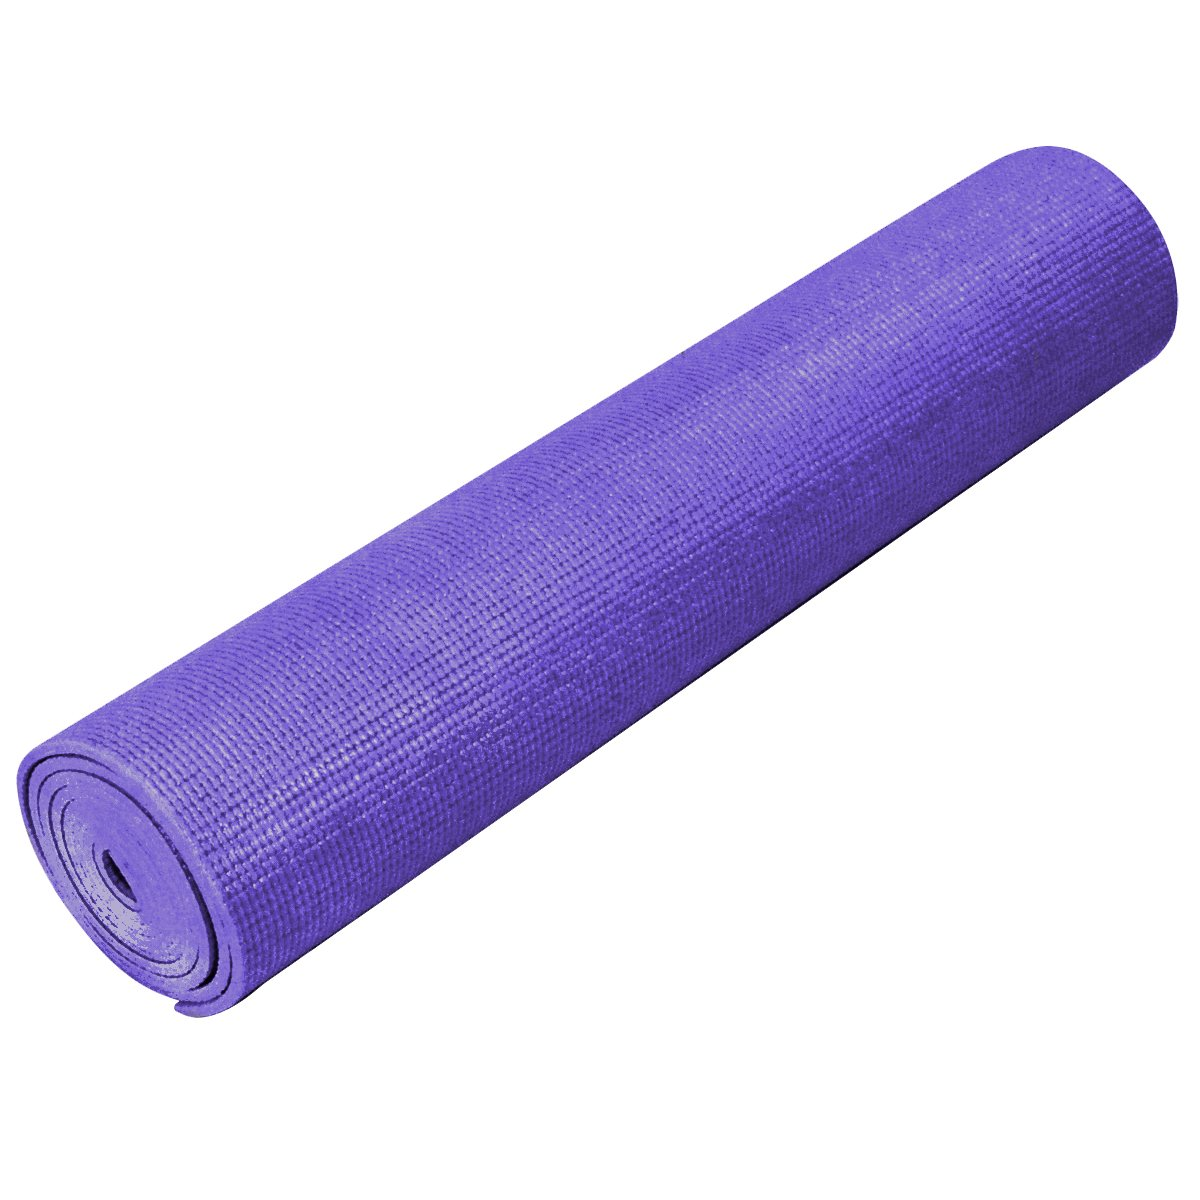 YogaDirect 1//4 Deluxe Extra Thick Yoga Sticky Mat Glaucous Blue Yoga Direct A241MATGLA14